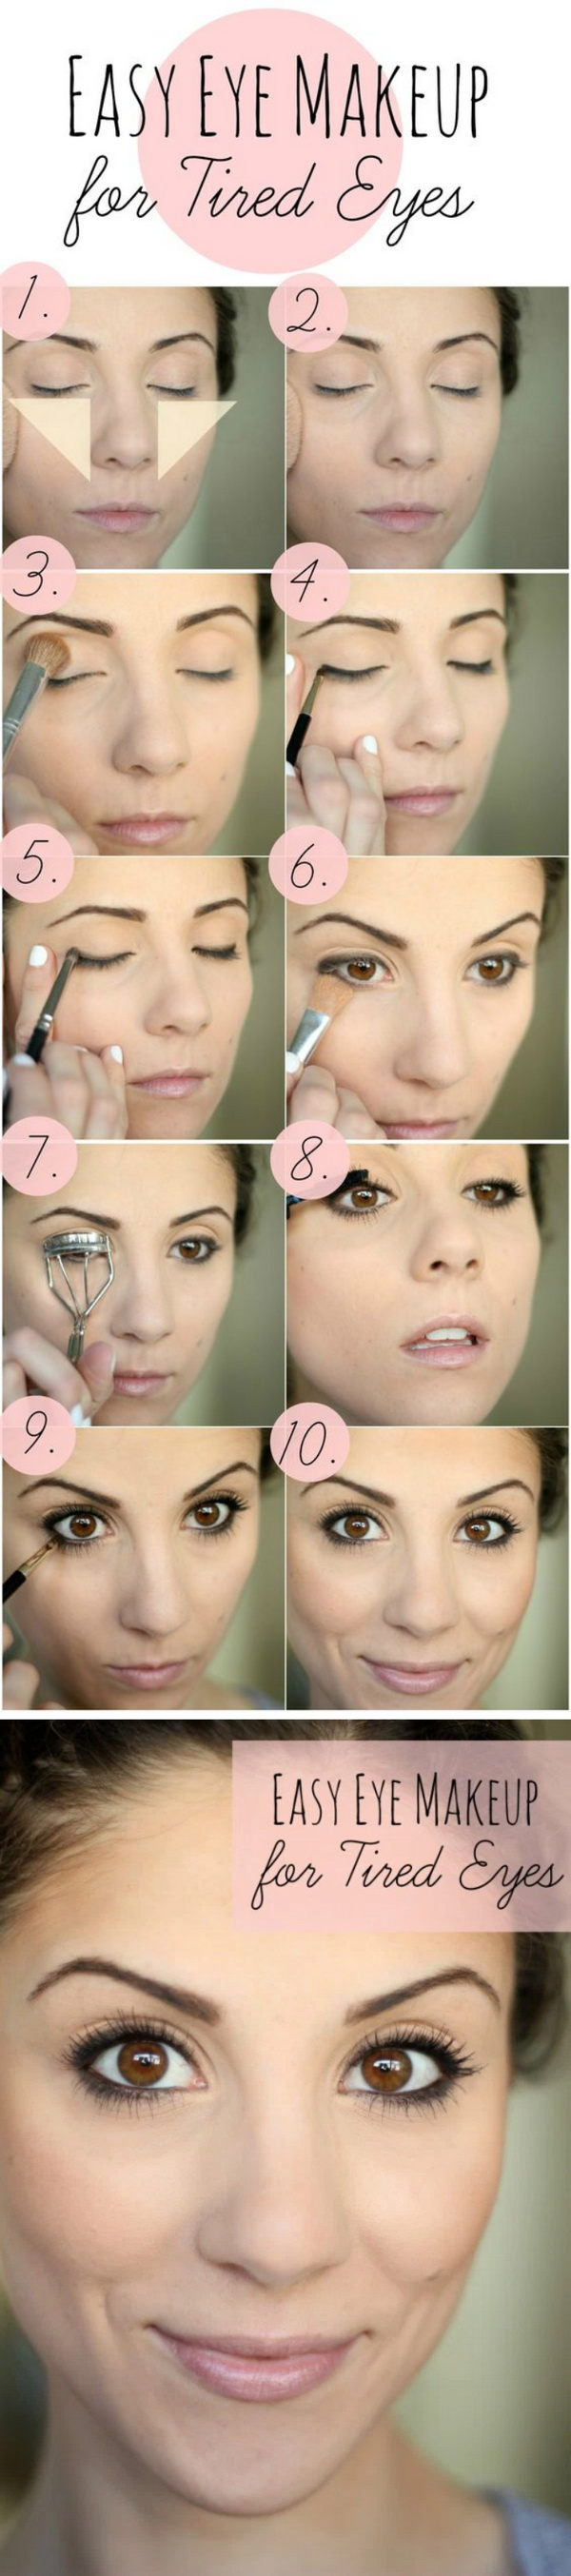 Life-saving Hacks to Get Rid of Dark Circles and Bags Under Your